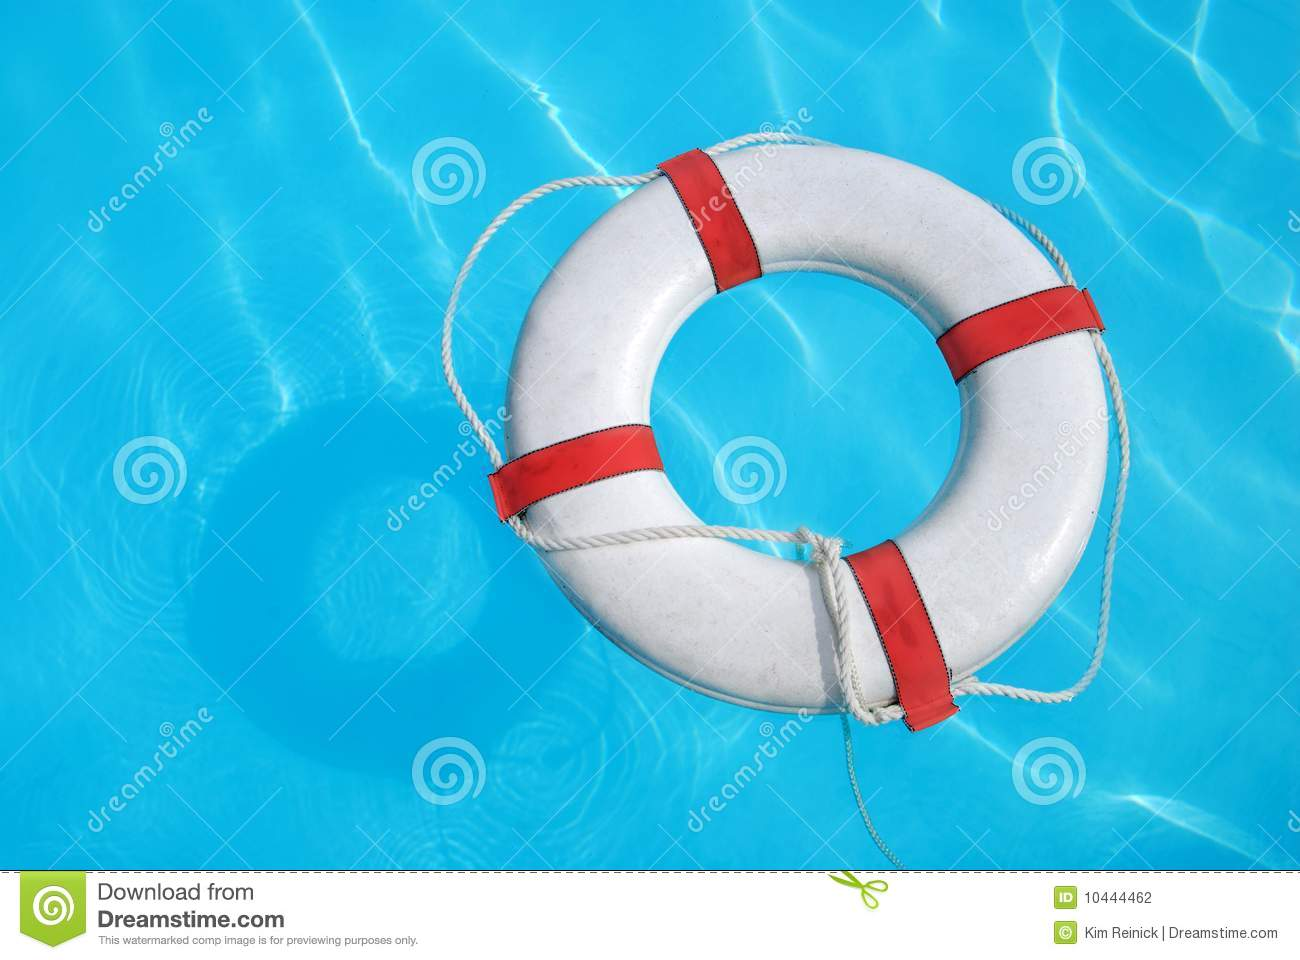 flotation images in photos view stock angle ring rings raft photo alamy high multicolor and floating inflatable swimming pool